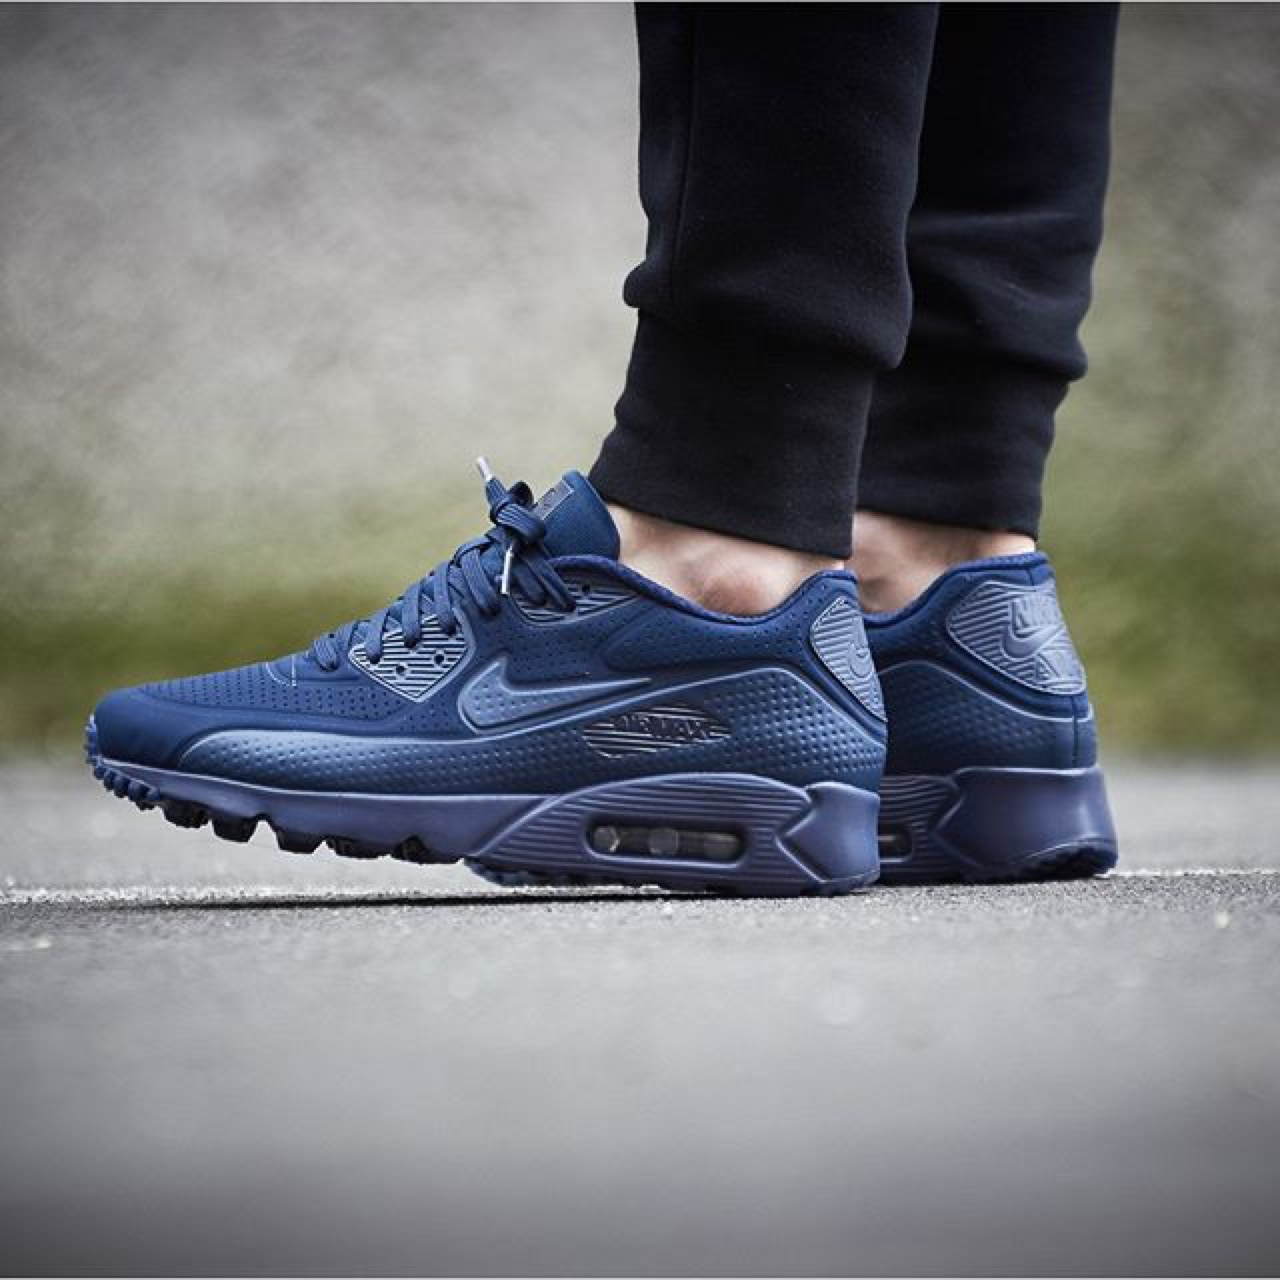 midnight navy for the nike air max 90 ultra moire